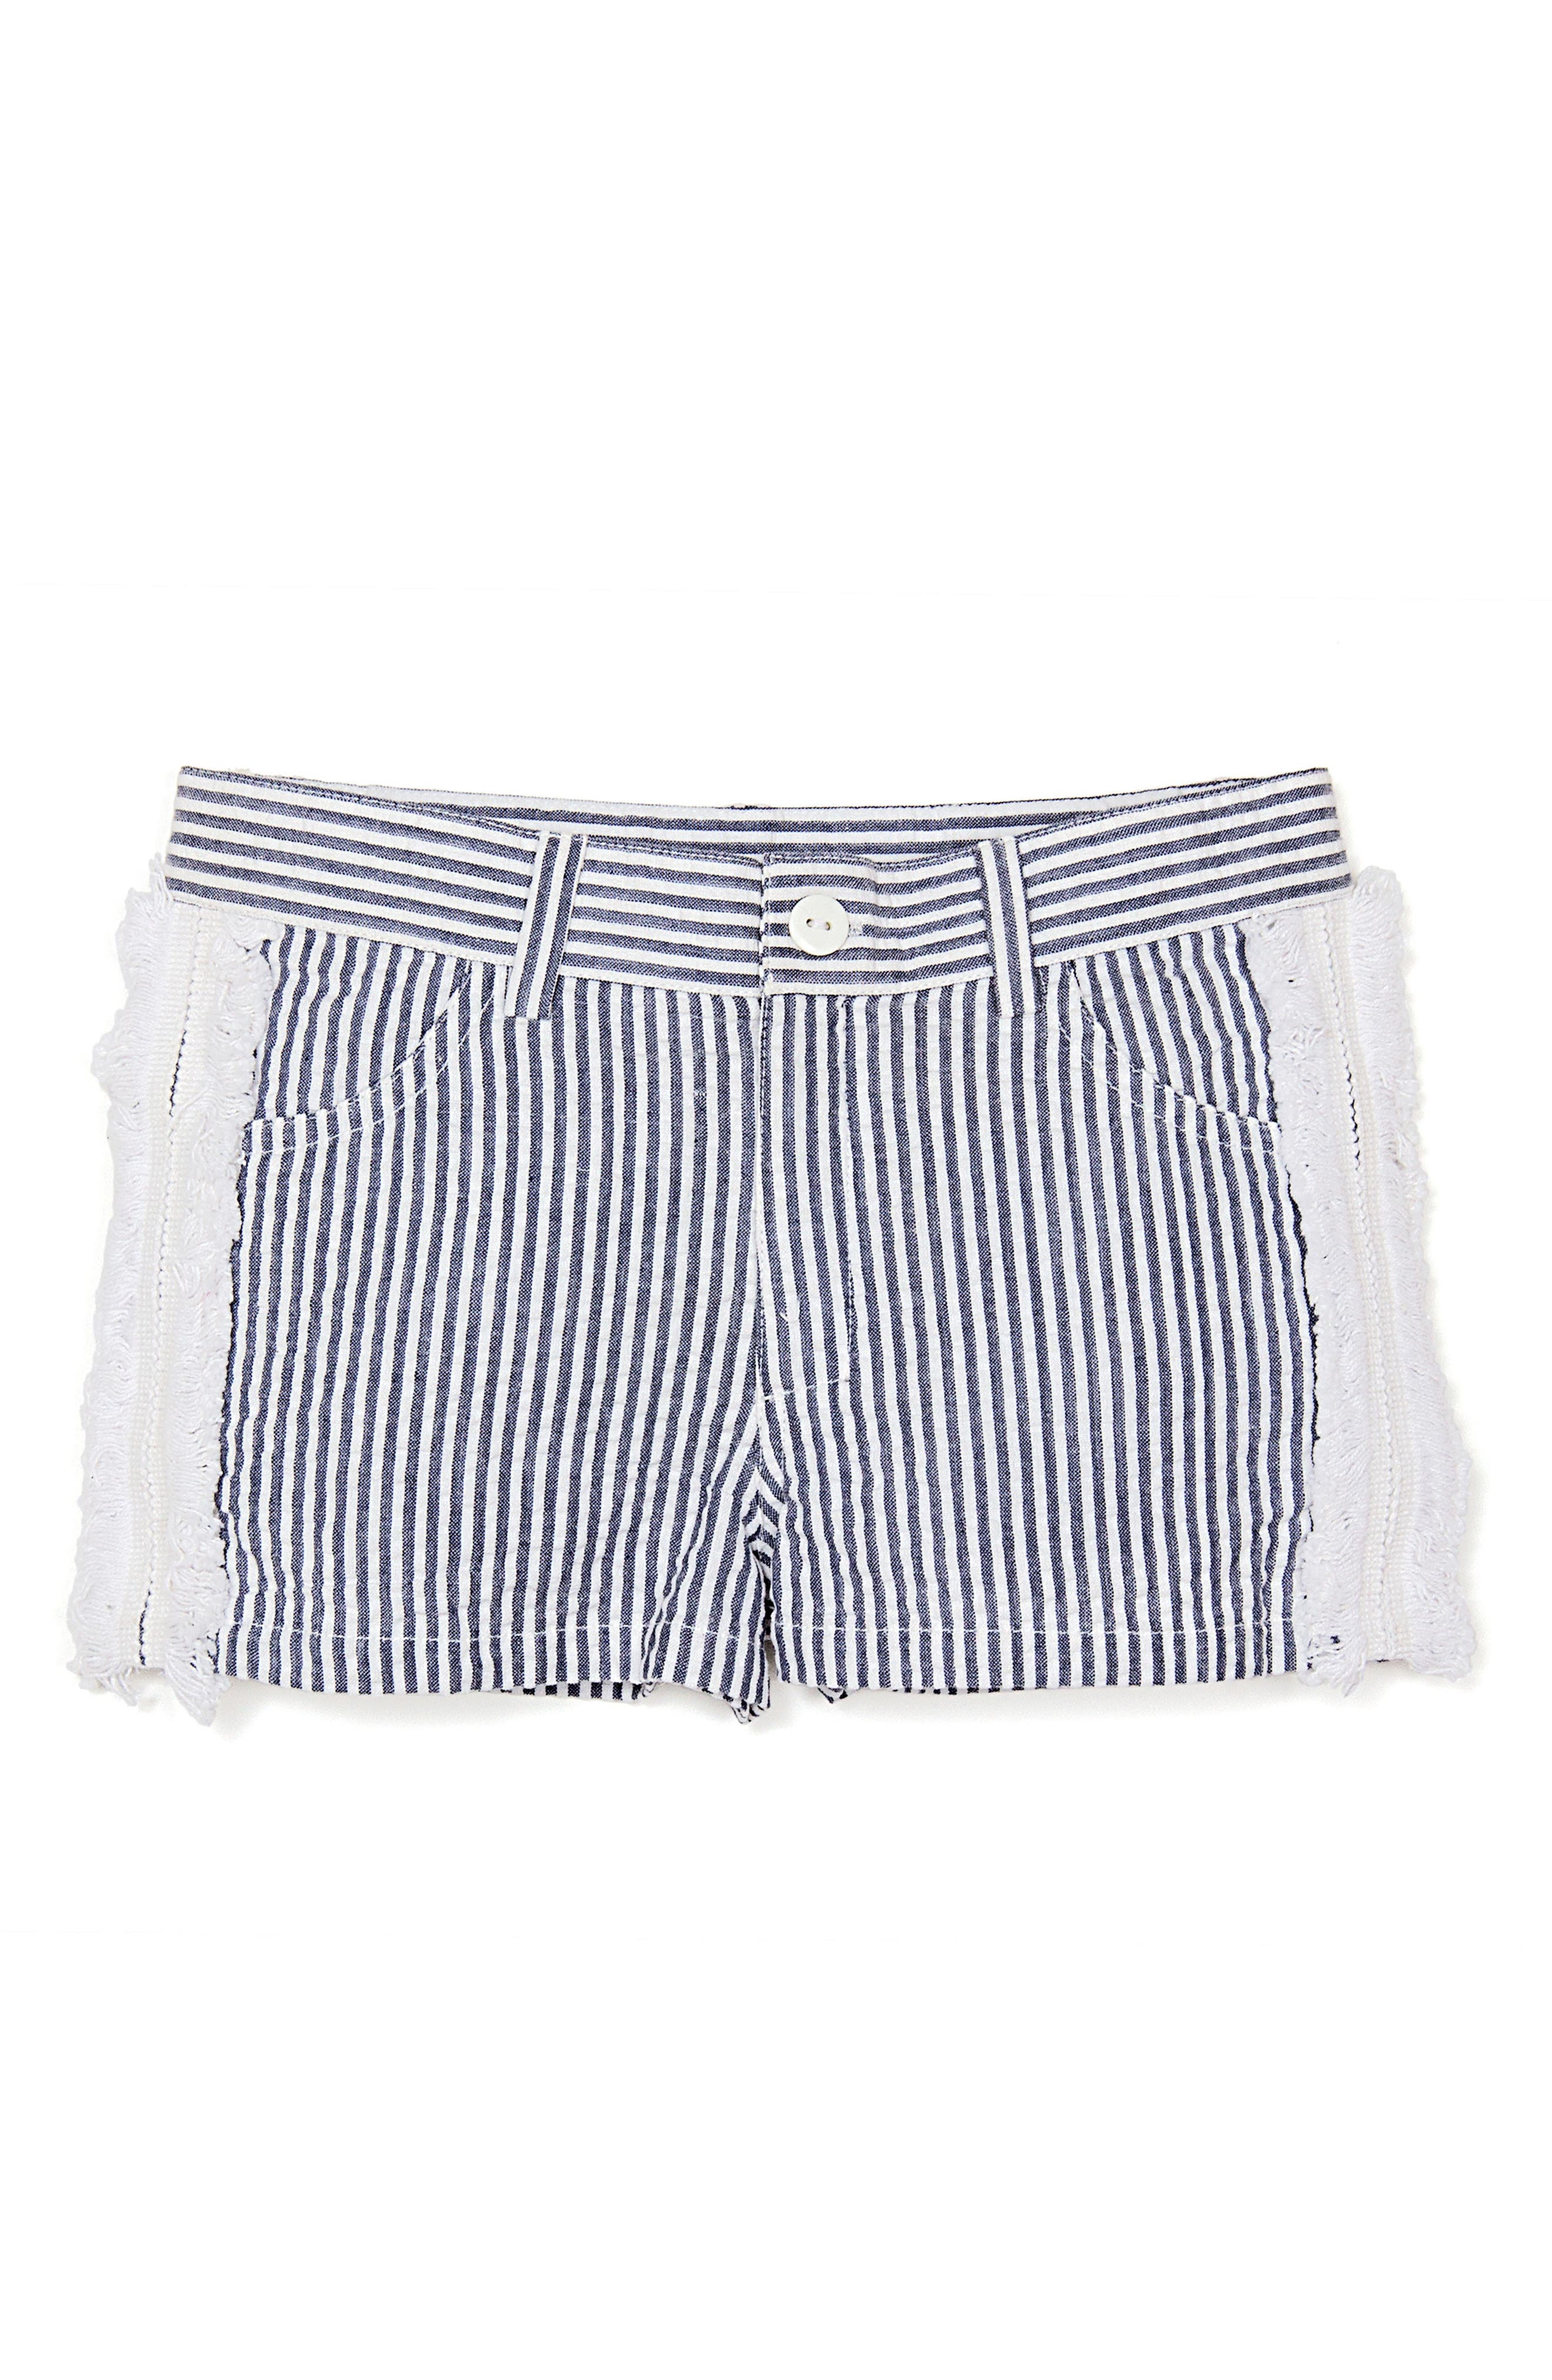 Seersucker Shorts,                         Main,                         color, Navy